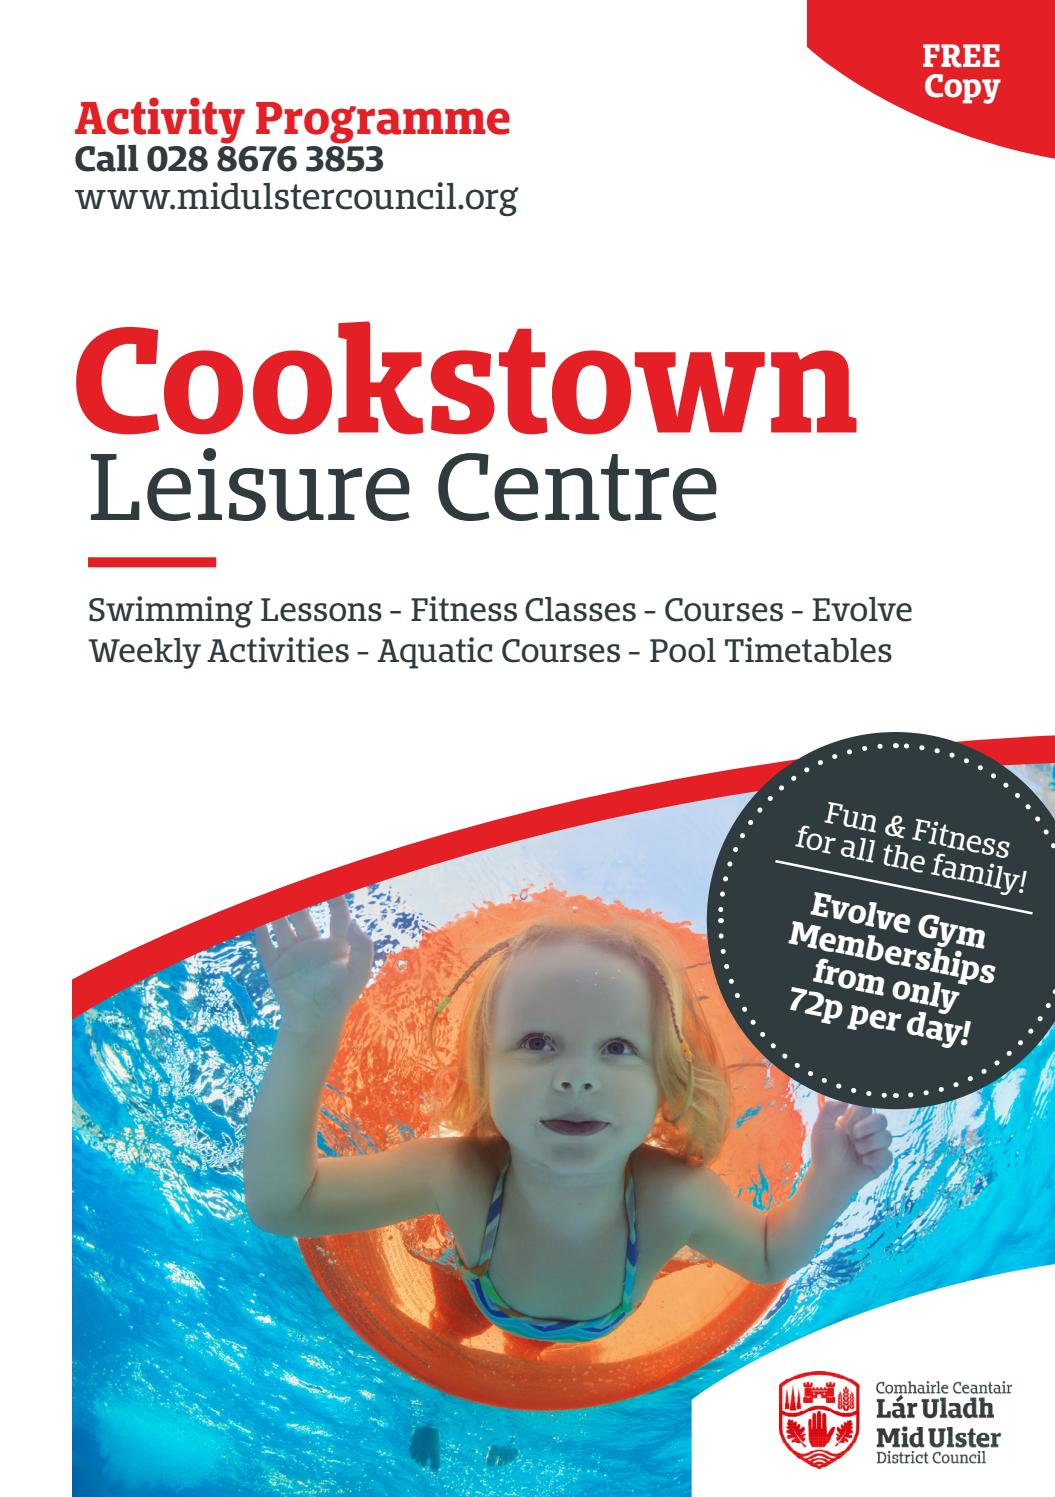 Cookstown Leisure Centre Information By Midulstercouncil Issuu